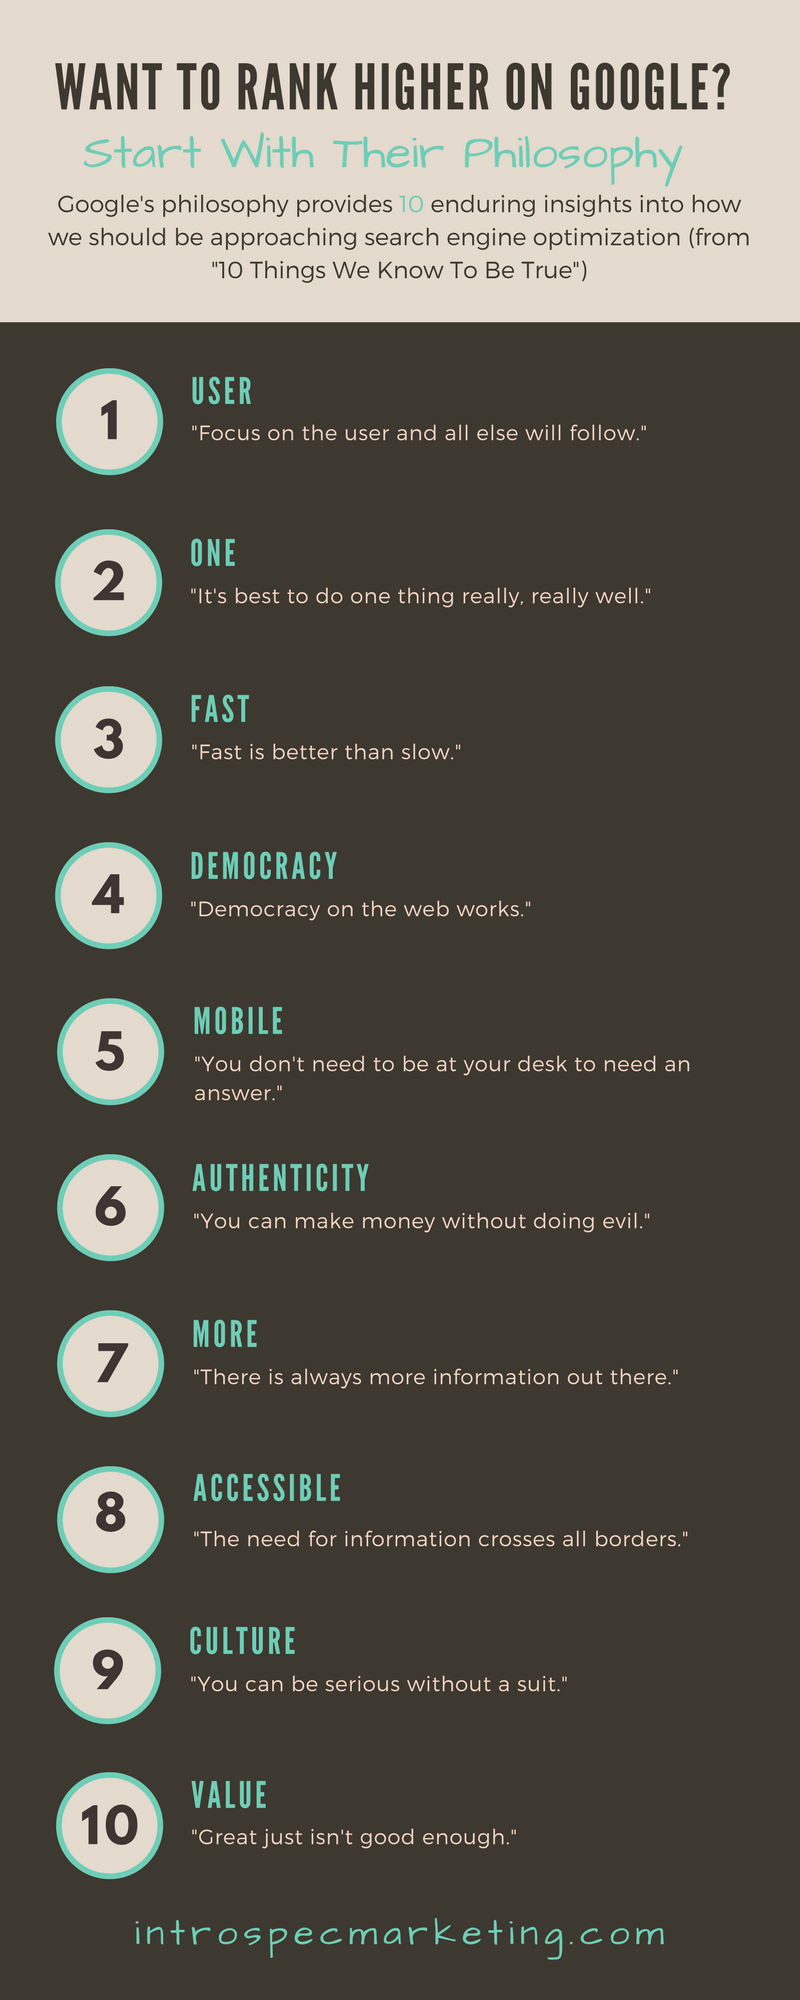 Want to Rank Higher on Google? infographic